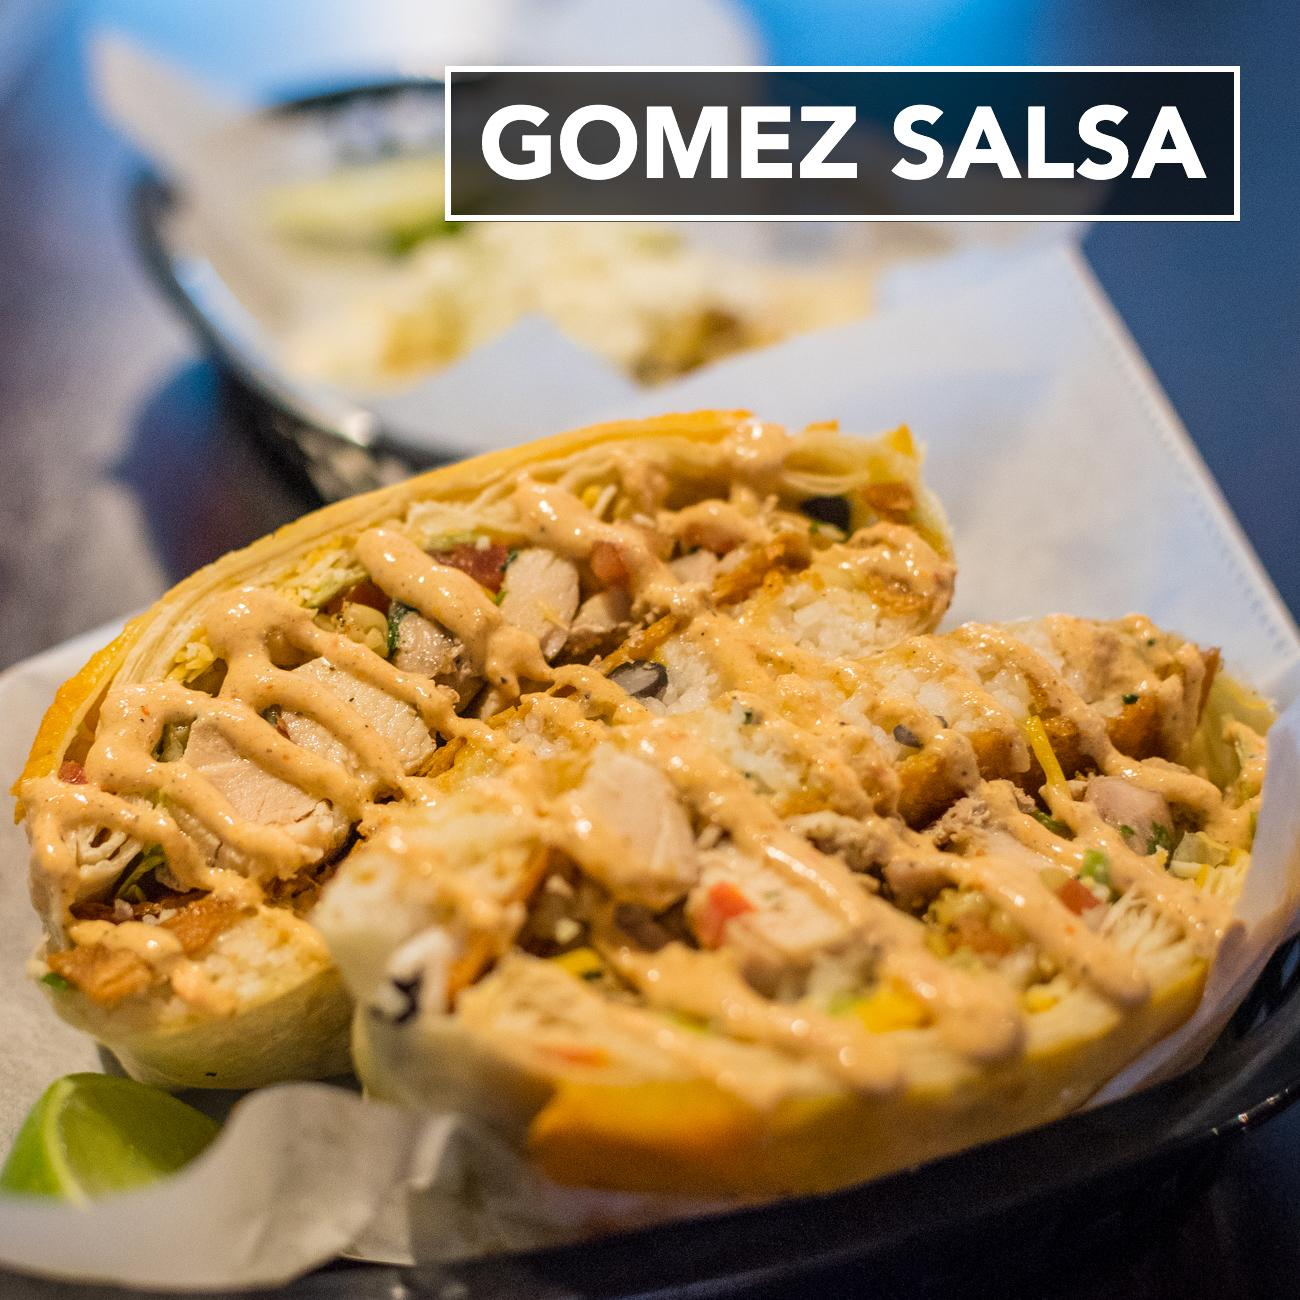 Gomez Salsa is located at 2437 Gilbert Ave., Cincinnati, OH  45206. / Image: Phil Armstrong, Cincinnati Refined // Published: 1.29.17